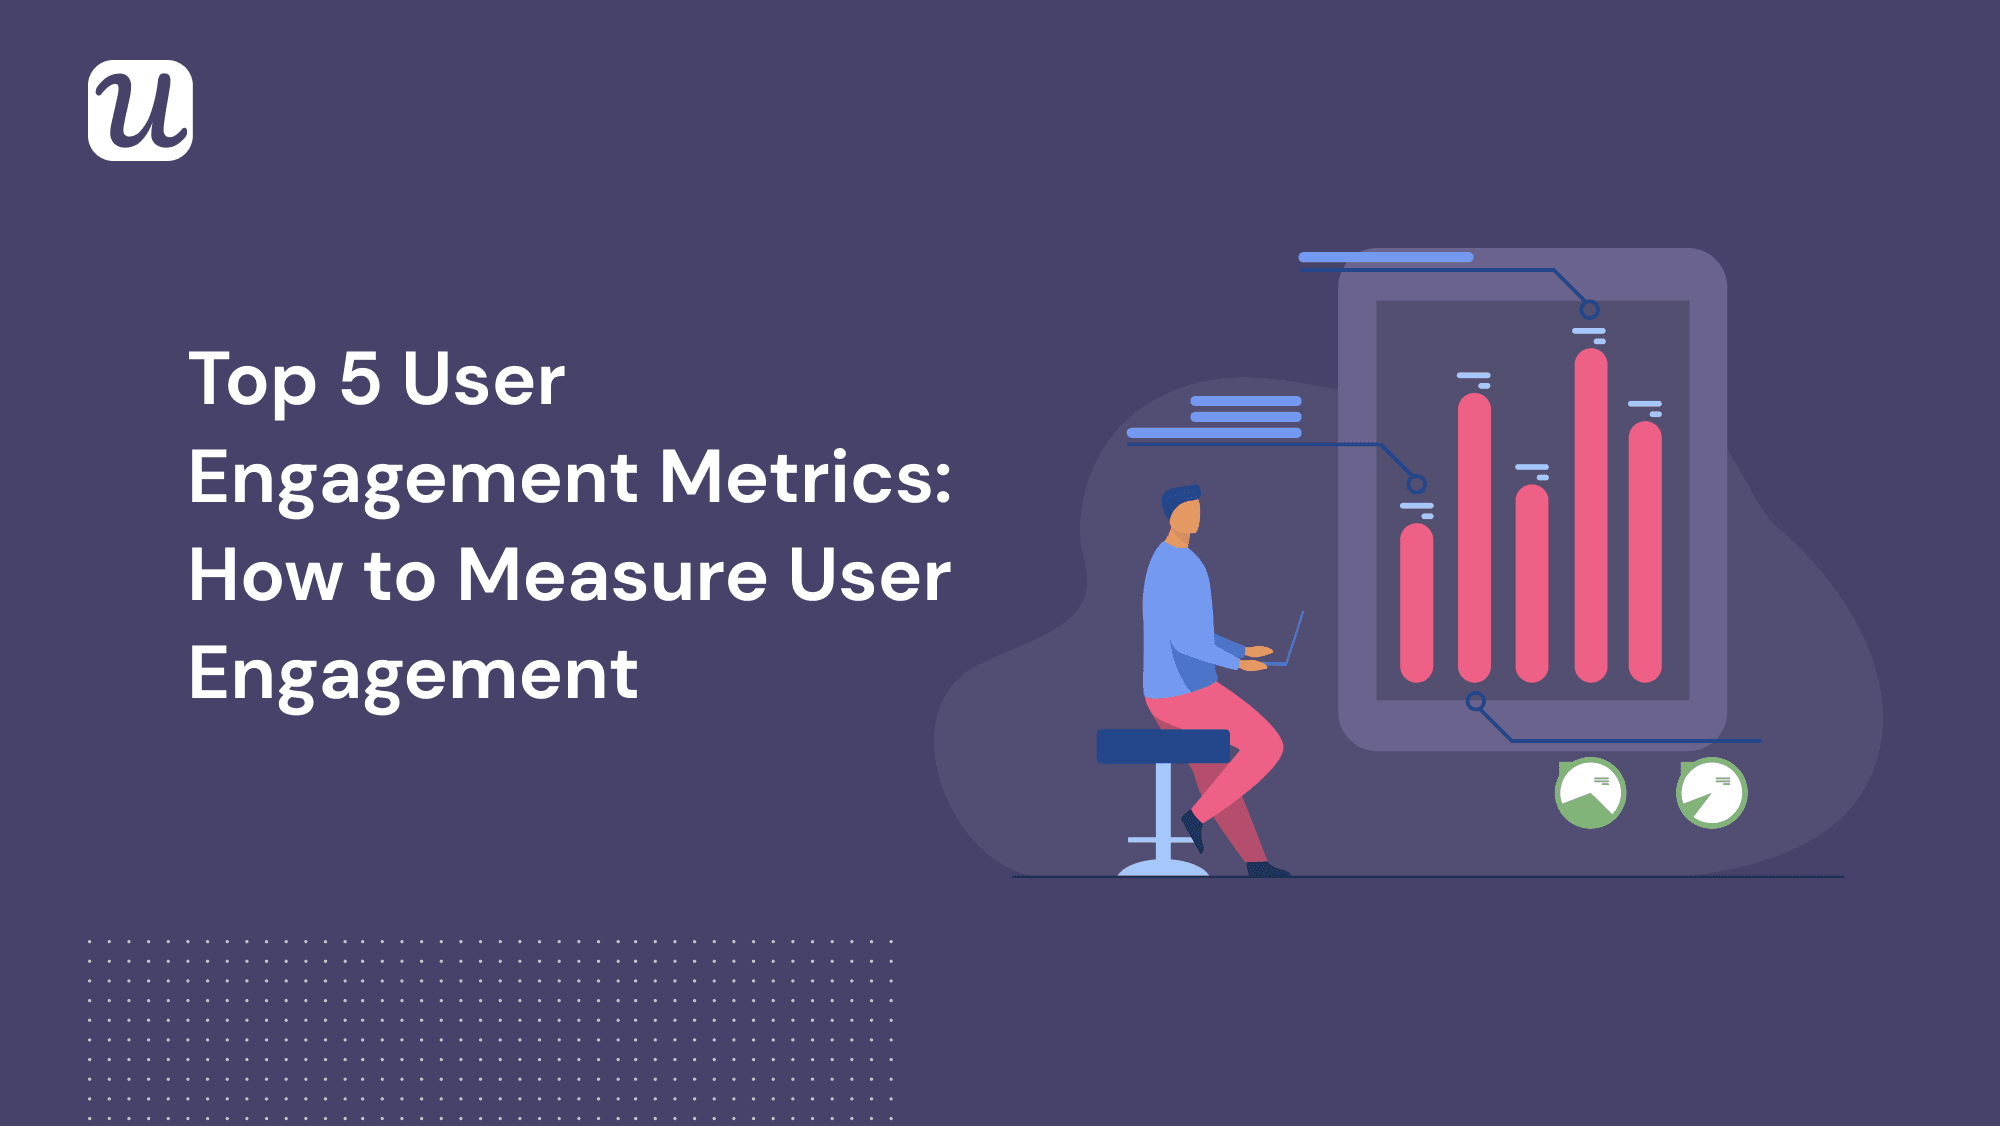 Top 5 User Engagement Metrics & How To Measure Them